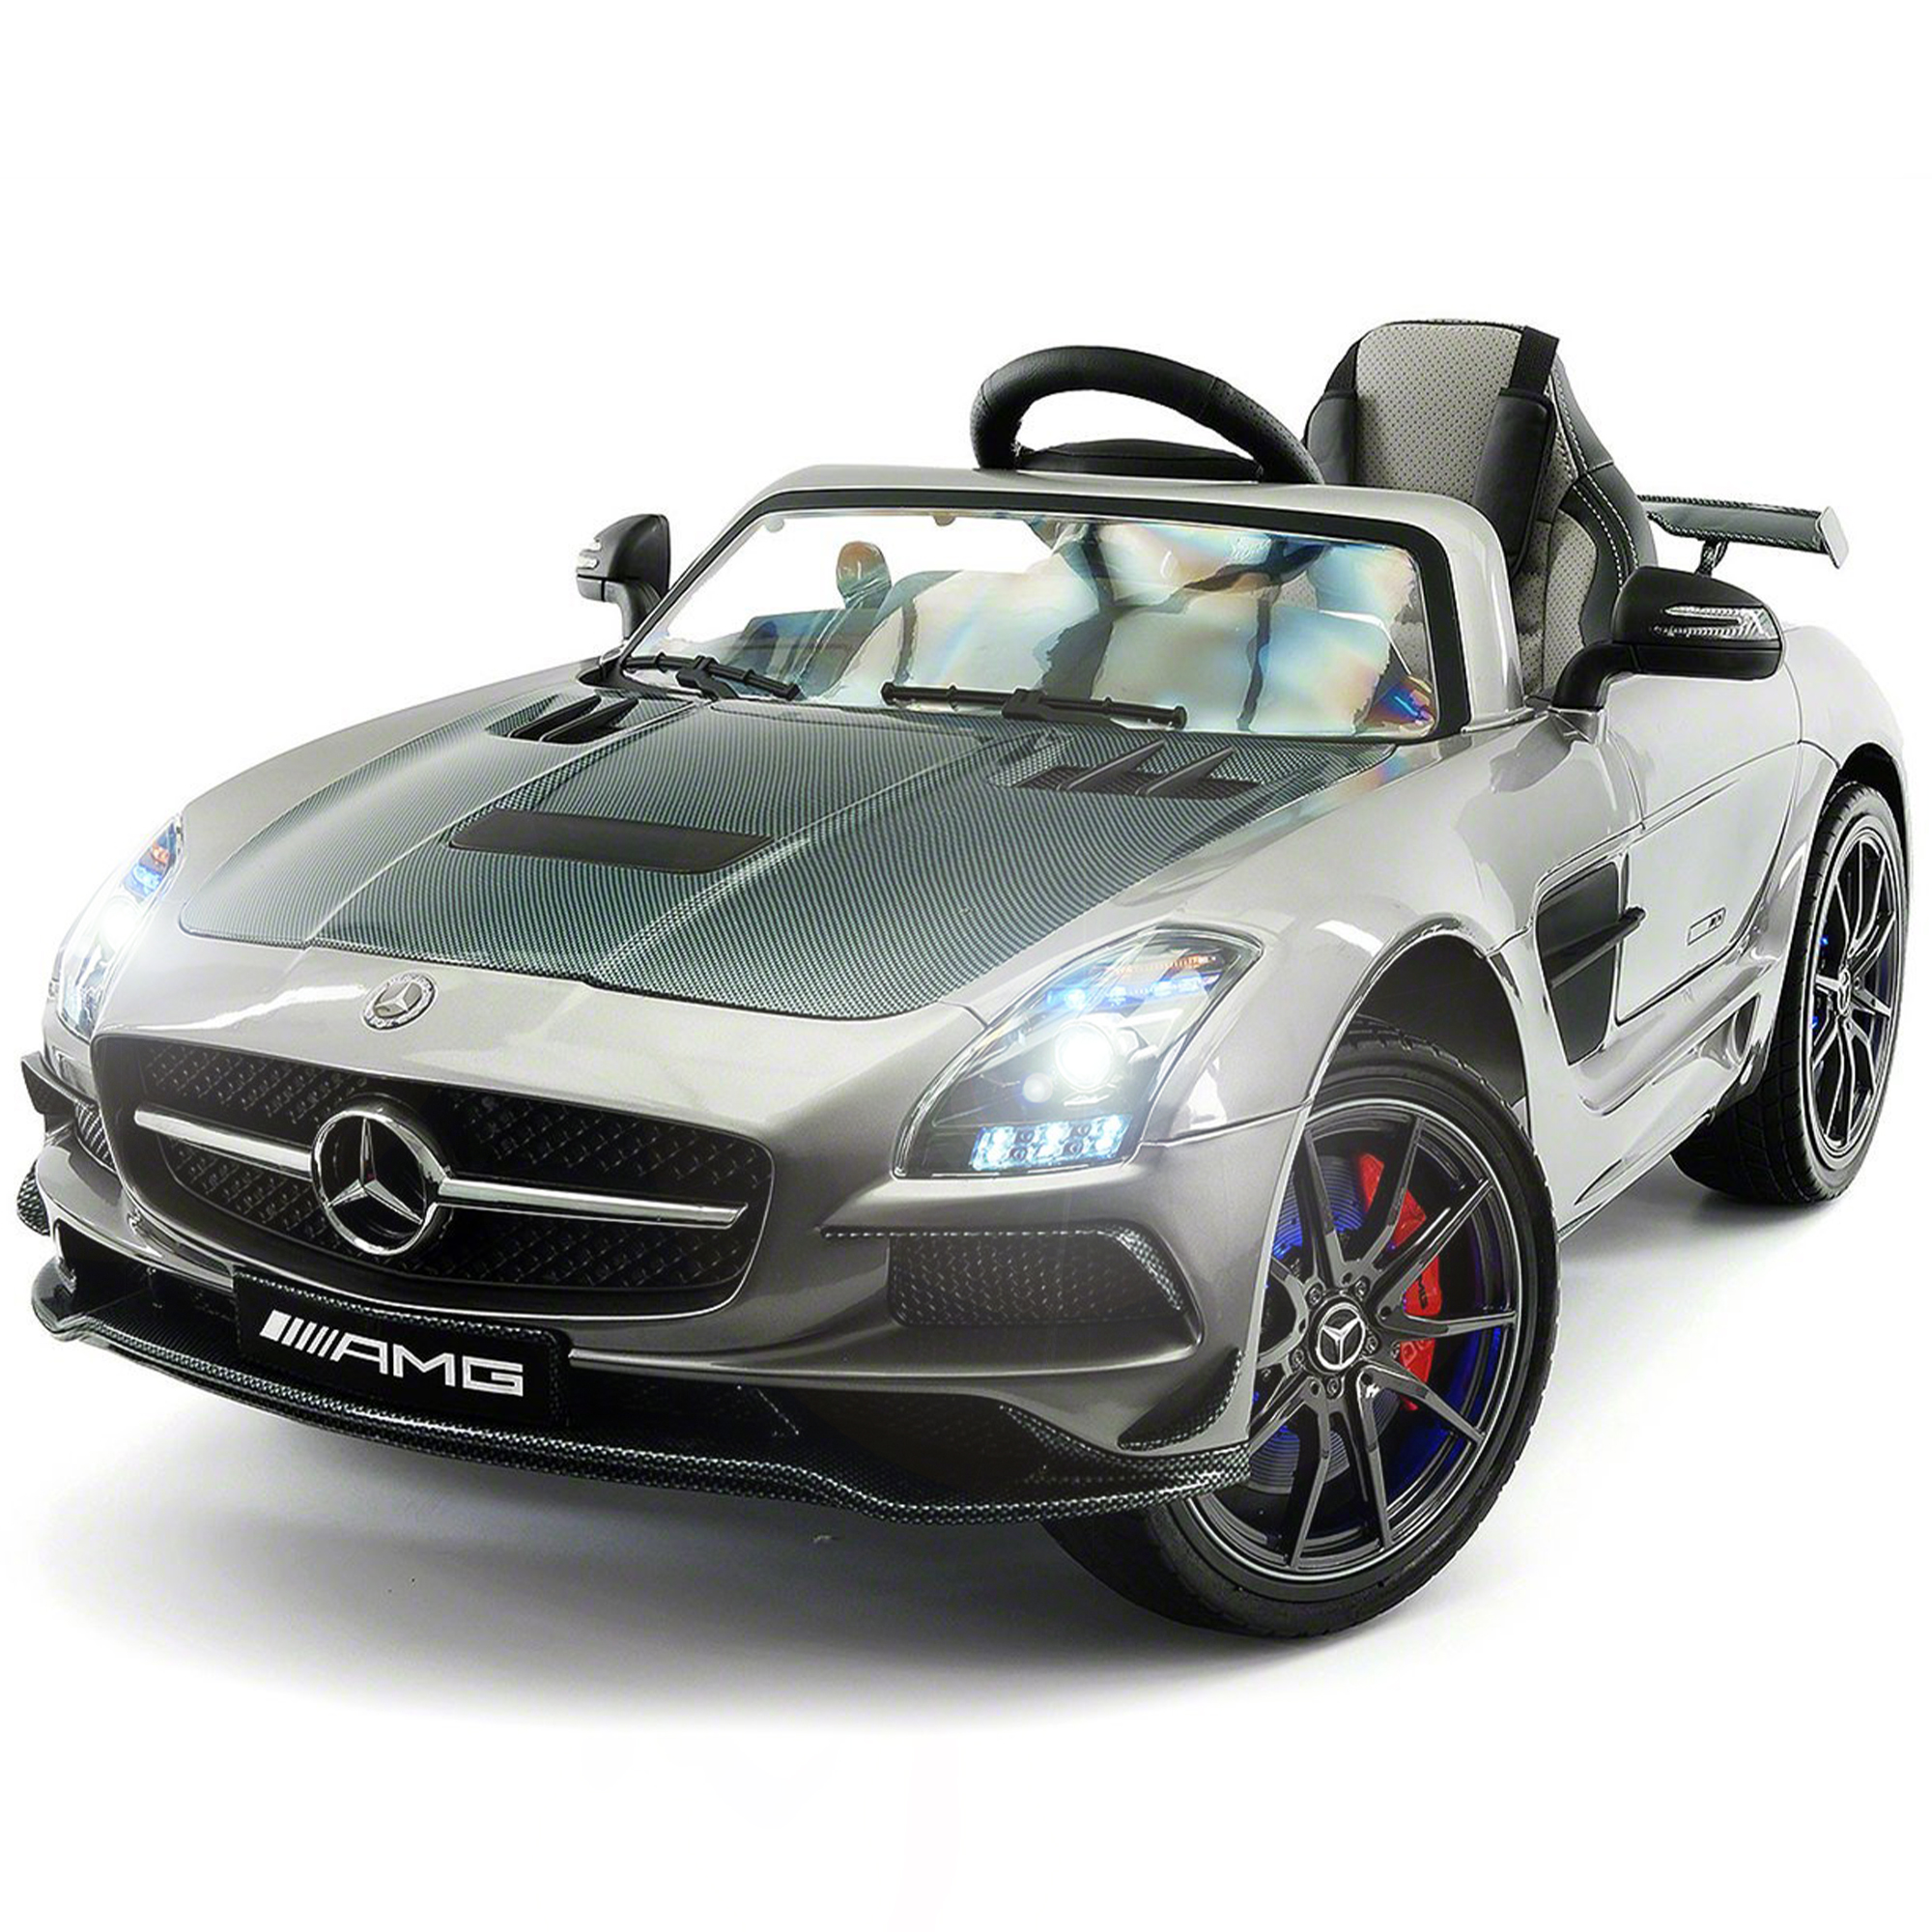 2019 Mercedes SLS AMG 12V Battery Powered Motorized Ride on Toy Car with Built in LCD TV, LED Lights, Leather Seat